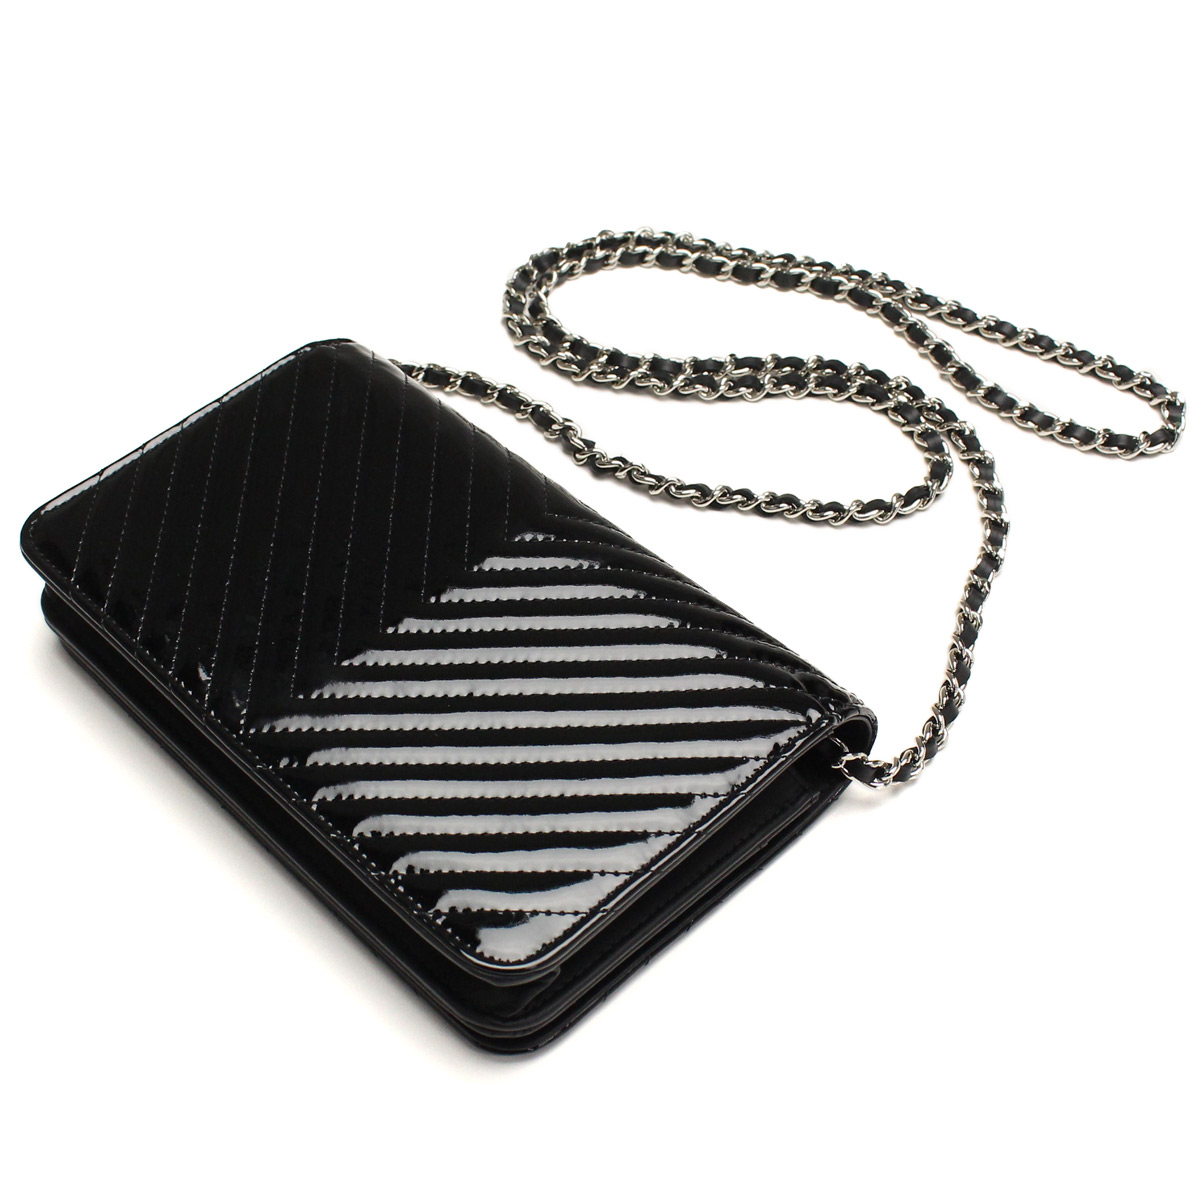 Chanel chain wallet A82359 black( taxfree/send by EMS/authentic/A brand new item )